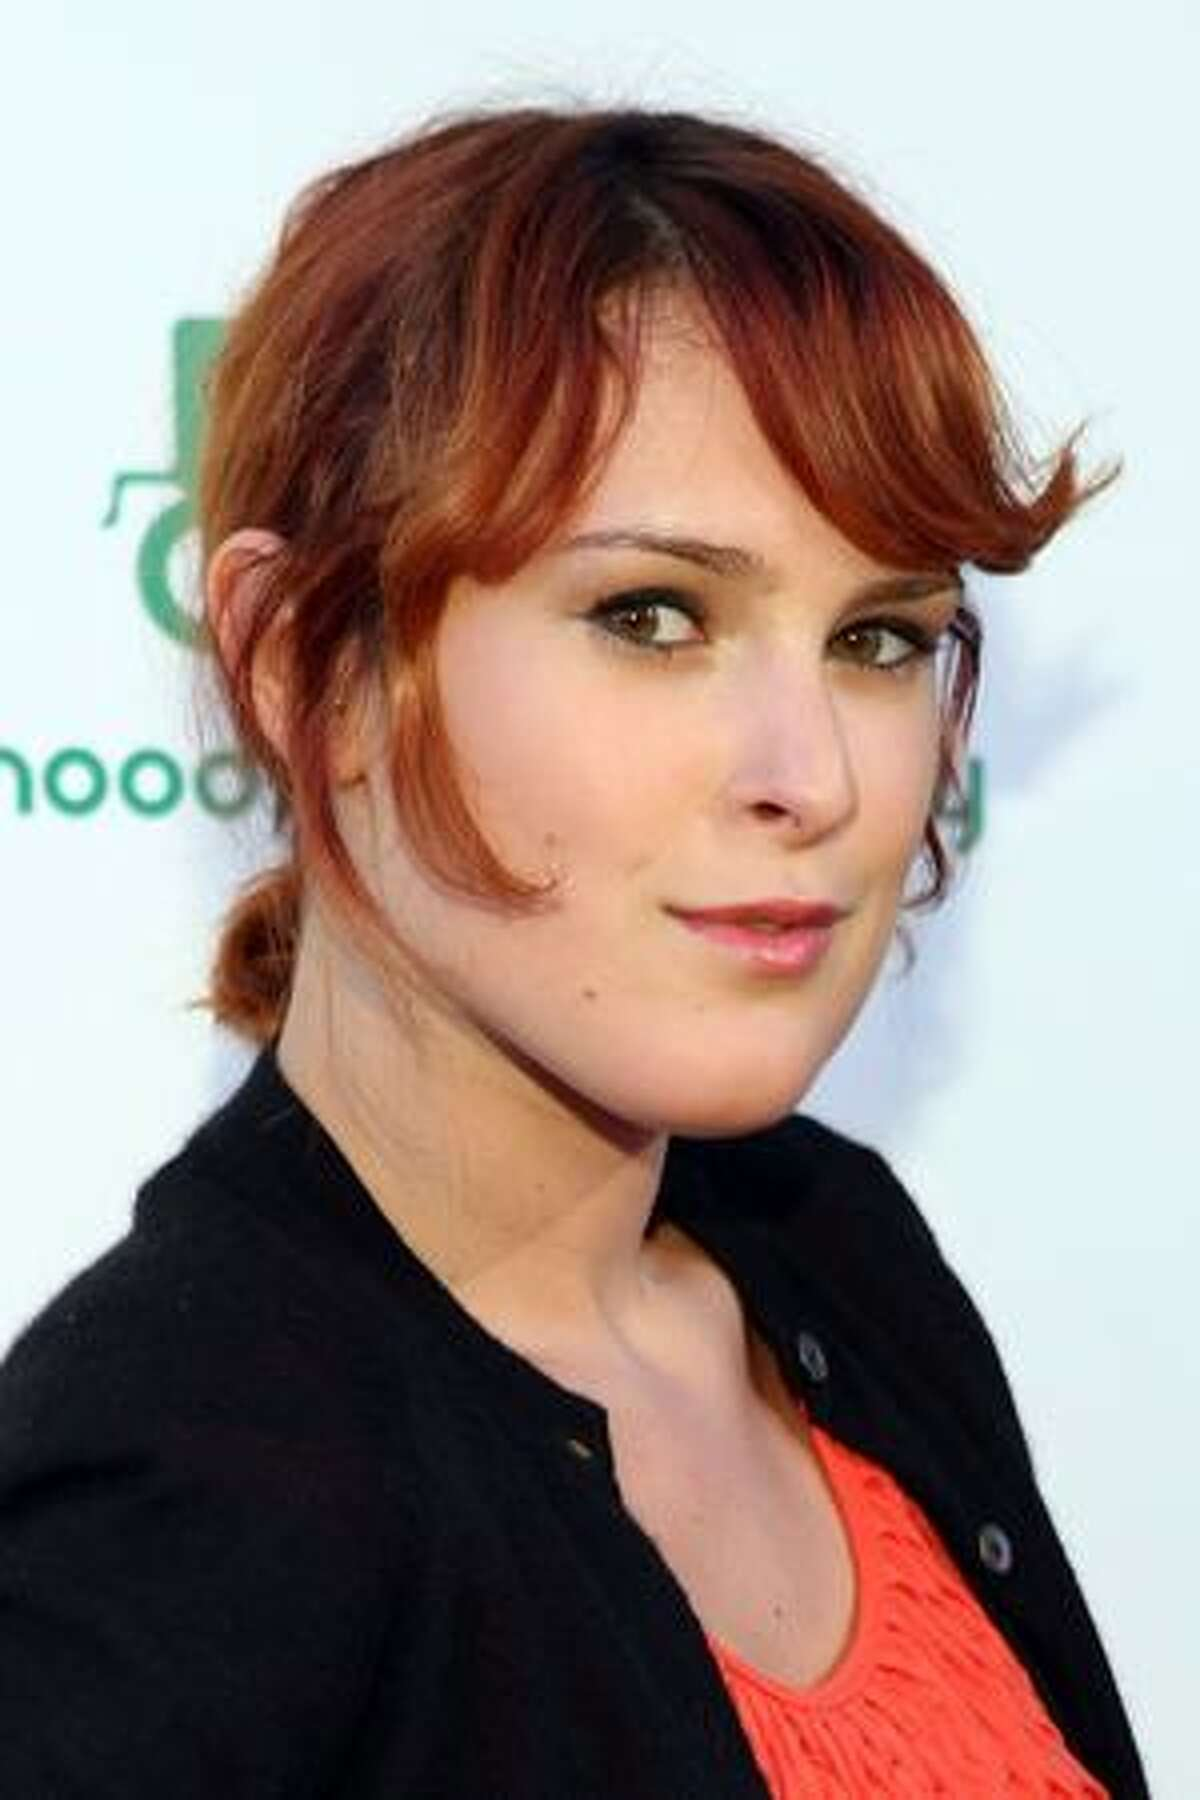 """Rumer Willis attends the Moods of Norway flagship store launch at the Robertson Boulevard store location in Beverly Hills, Calif., on Wednesday, July 8, 2009. Moods of Norway is a clothing store with the motto """"Happy Clothes for Happy People."""""""